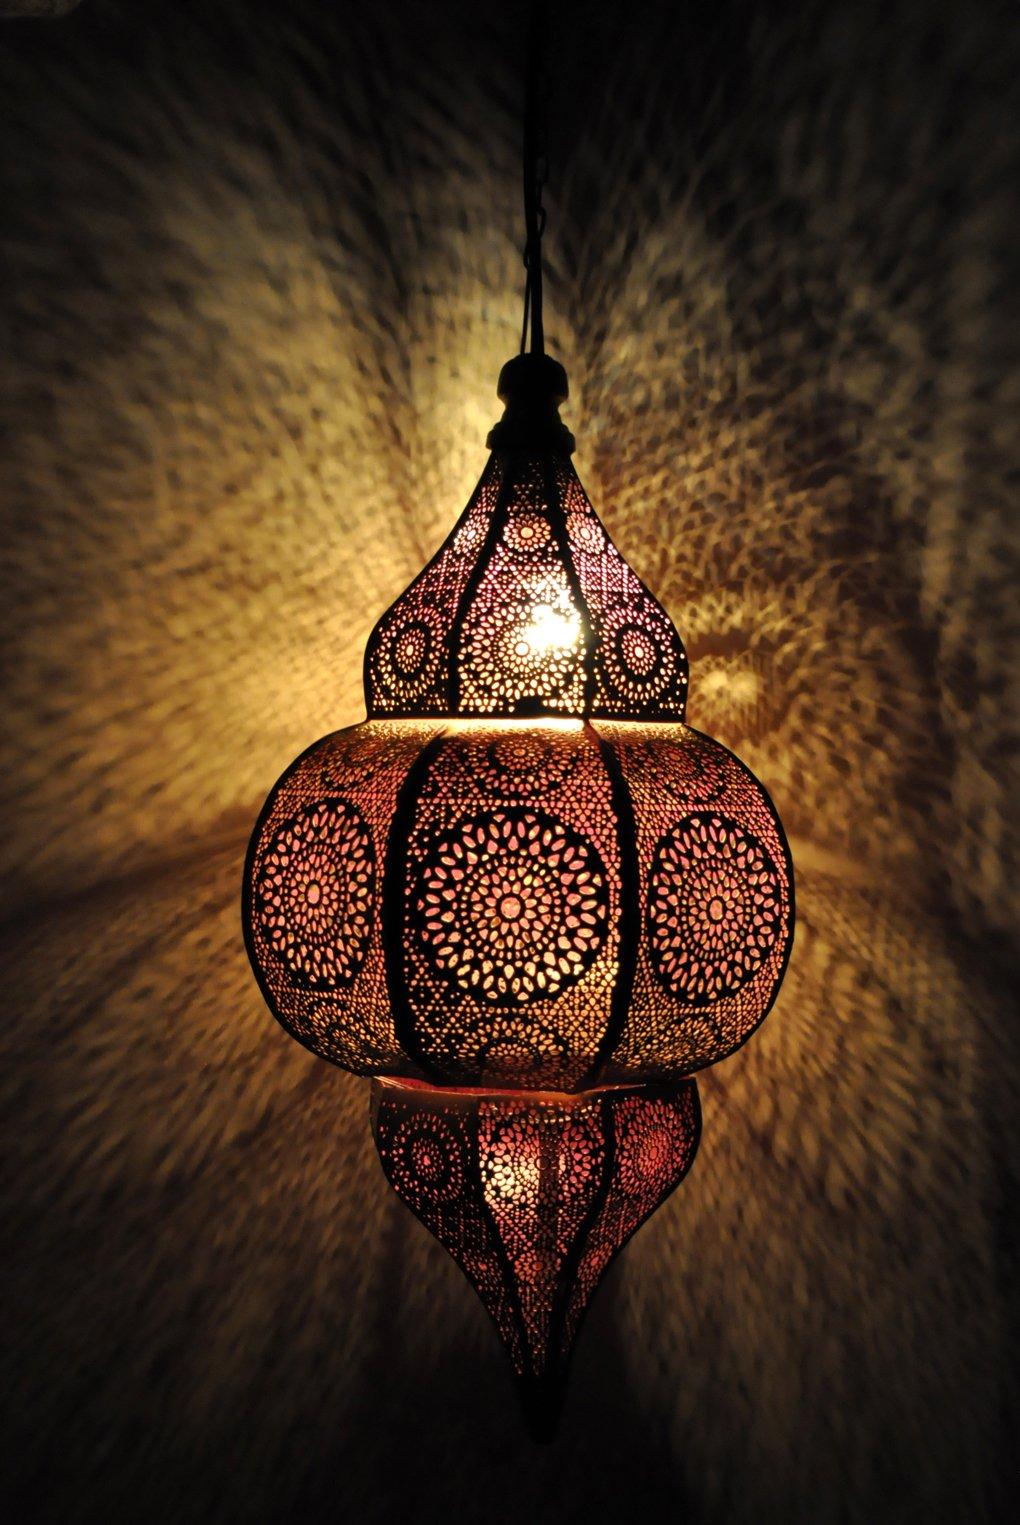 Lalhaveli Vintage Decorative Moroccan Hanging Pendant Light Fixture/Indoor & Outdoor Home Decor Ceiling Light for Living Room, Bed Room, Garden, Balcony & Patio, Metal Polished Brass Finish by Lalhaveli (Image #1)